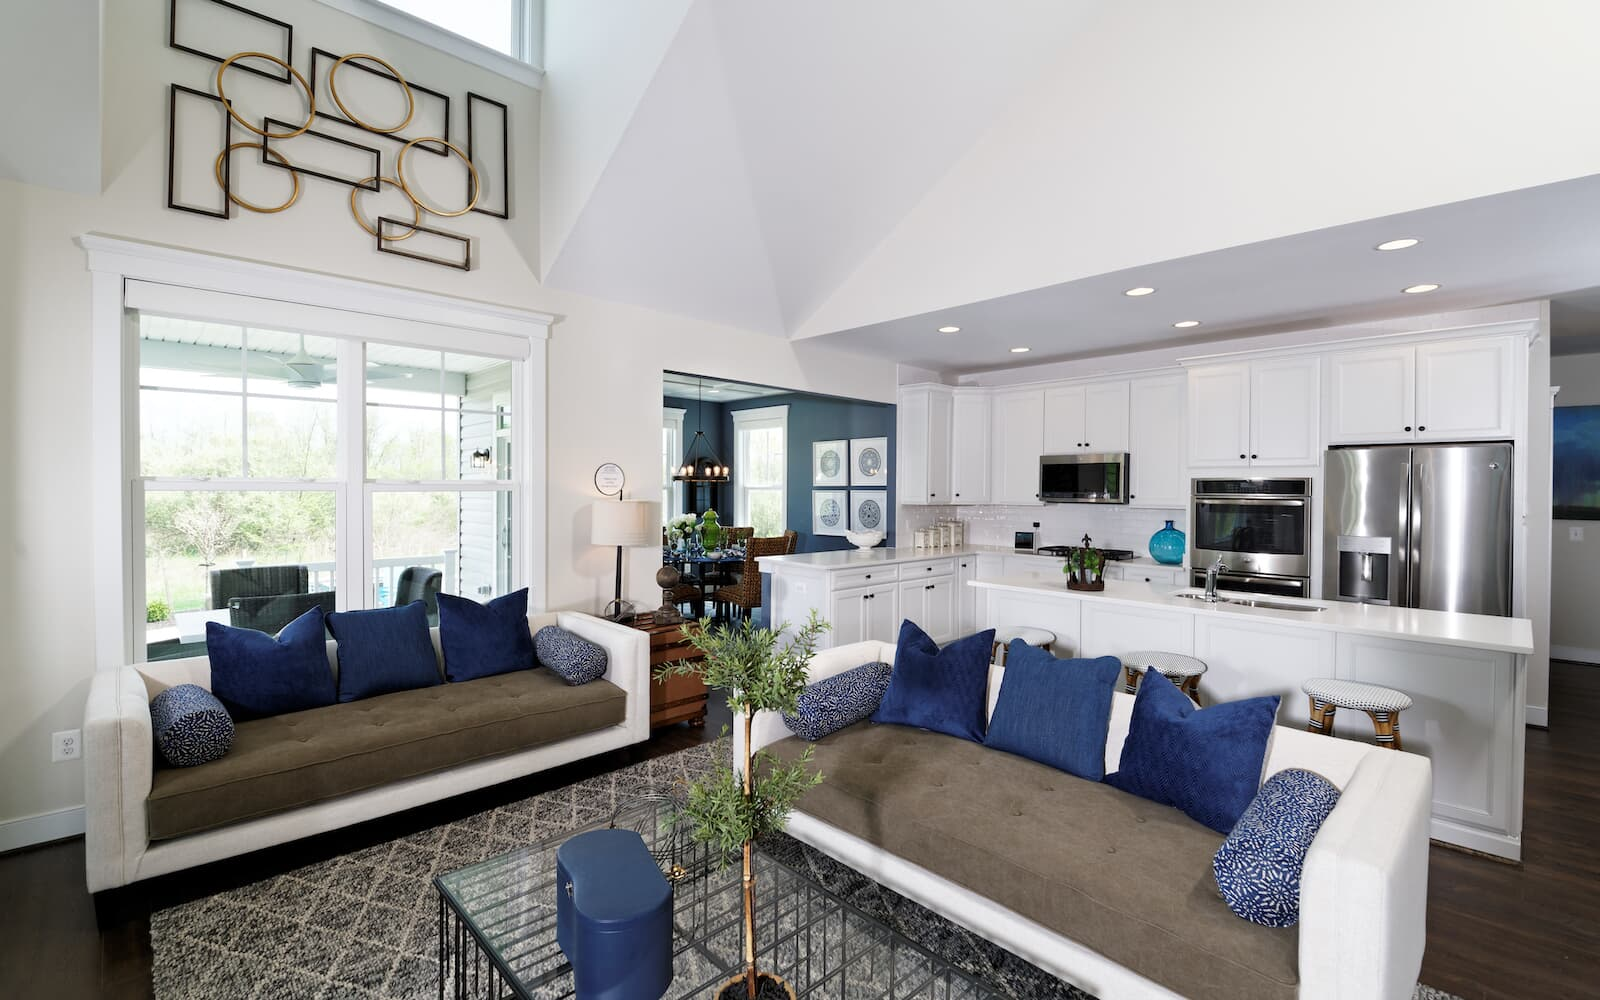 Cresswell-living-room-single-family-homes-leesburg-va-waterford-manor-brookfield-residential